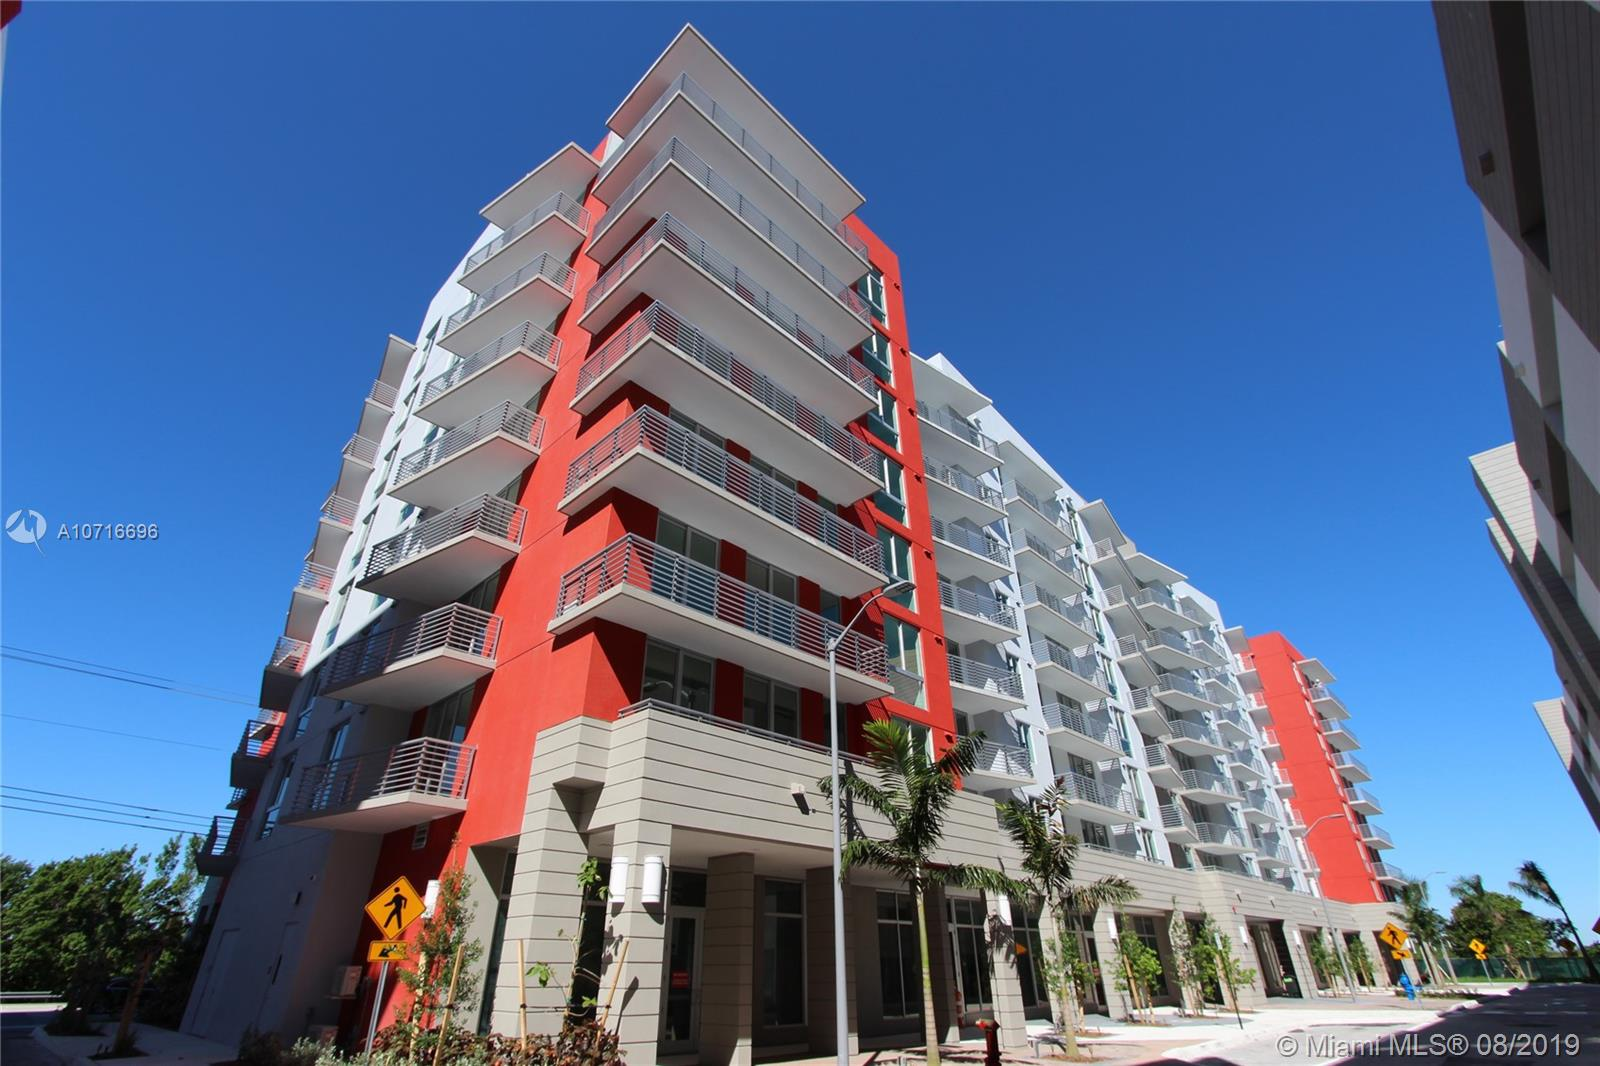 7875 NW 107th Ave #718 For Sale A10716696, FL